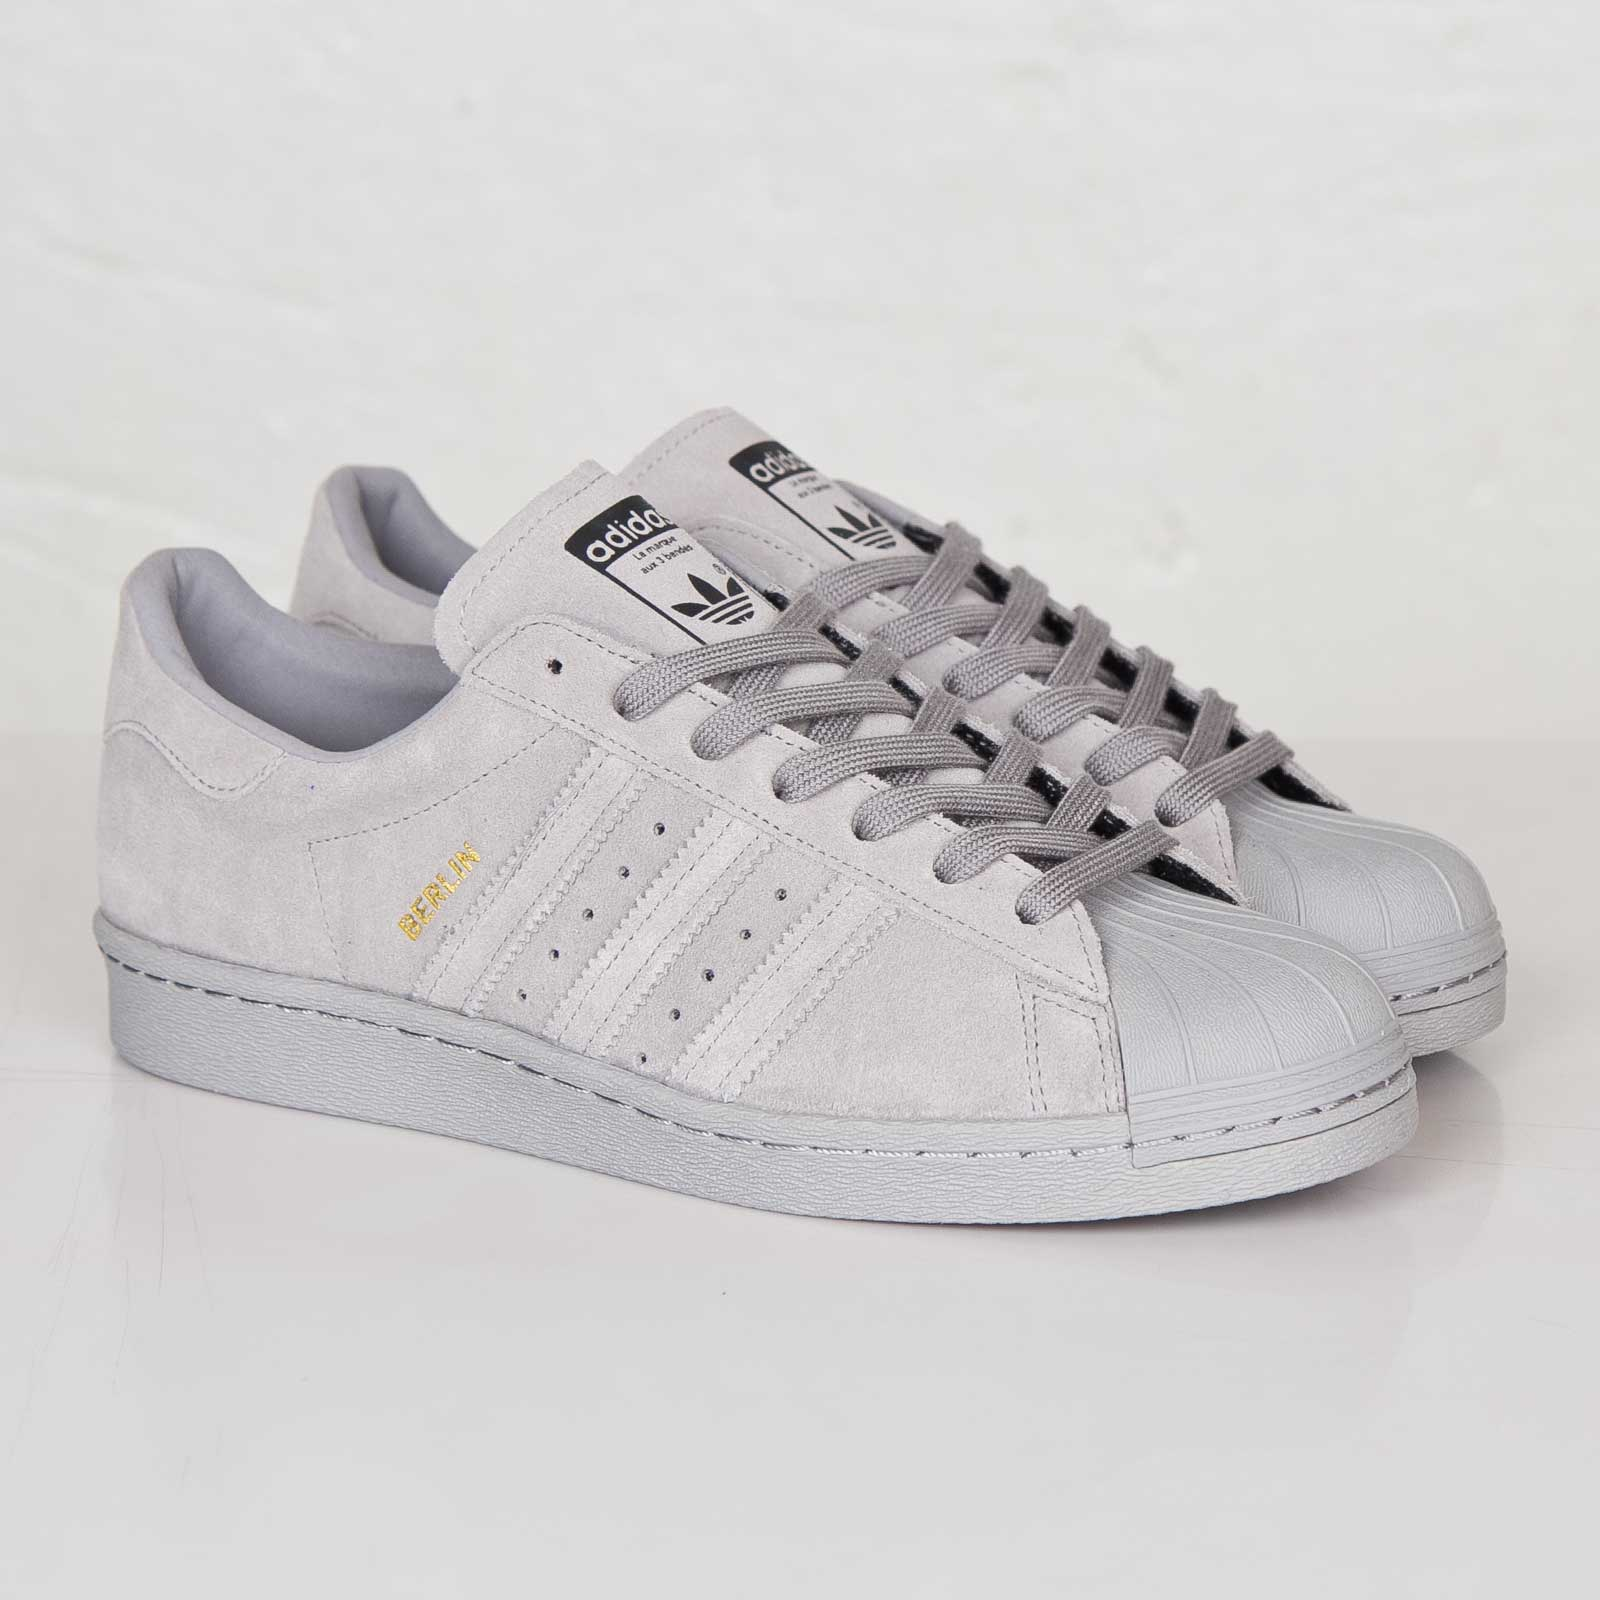 adidas u superstar dam